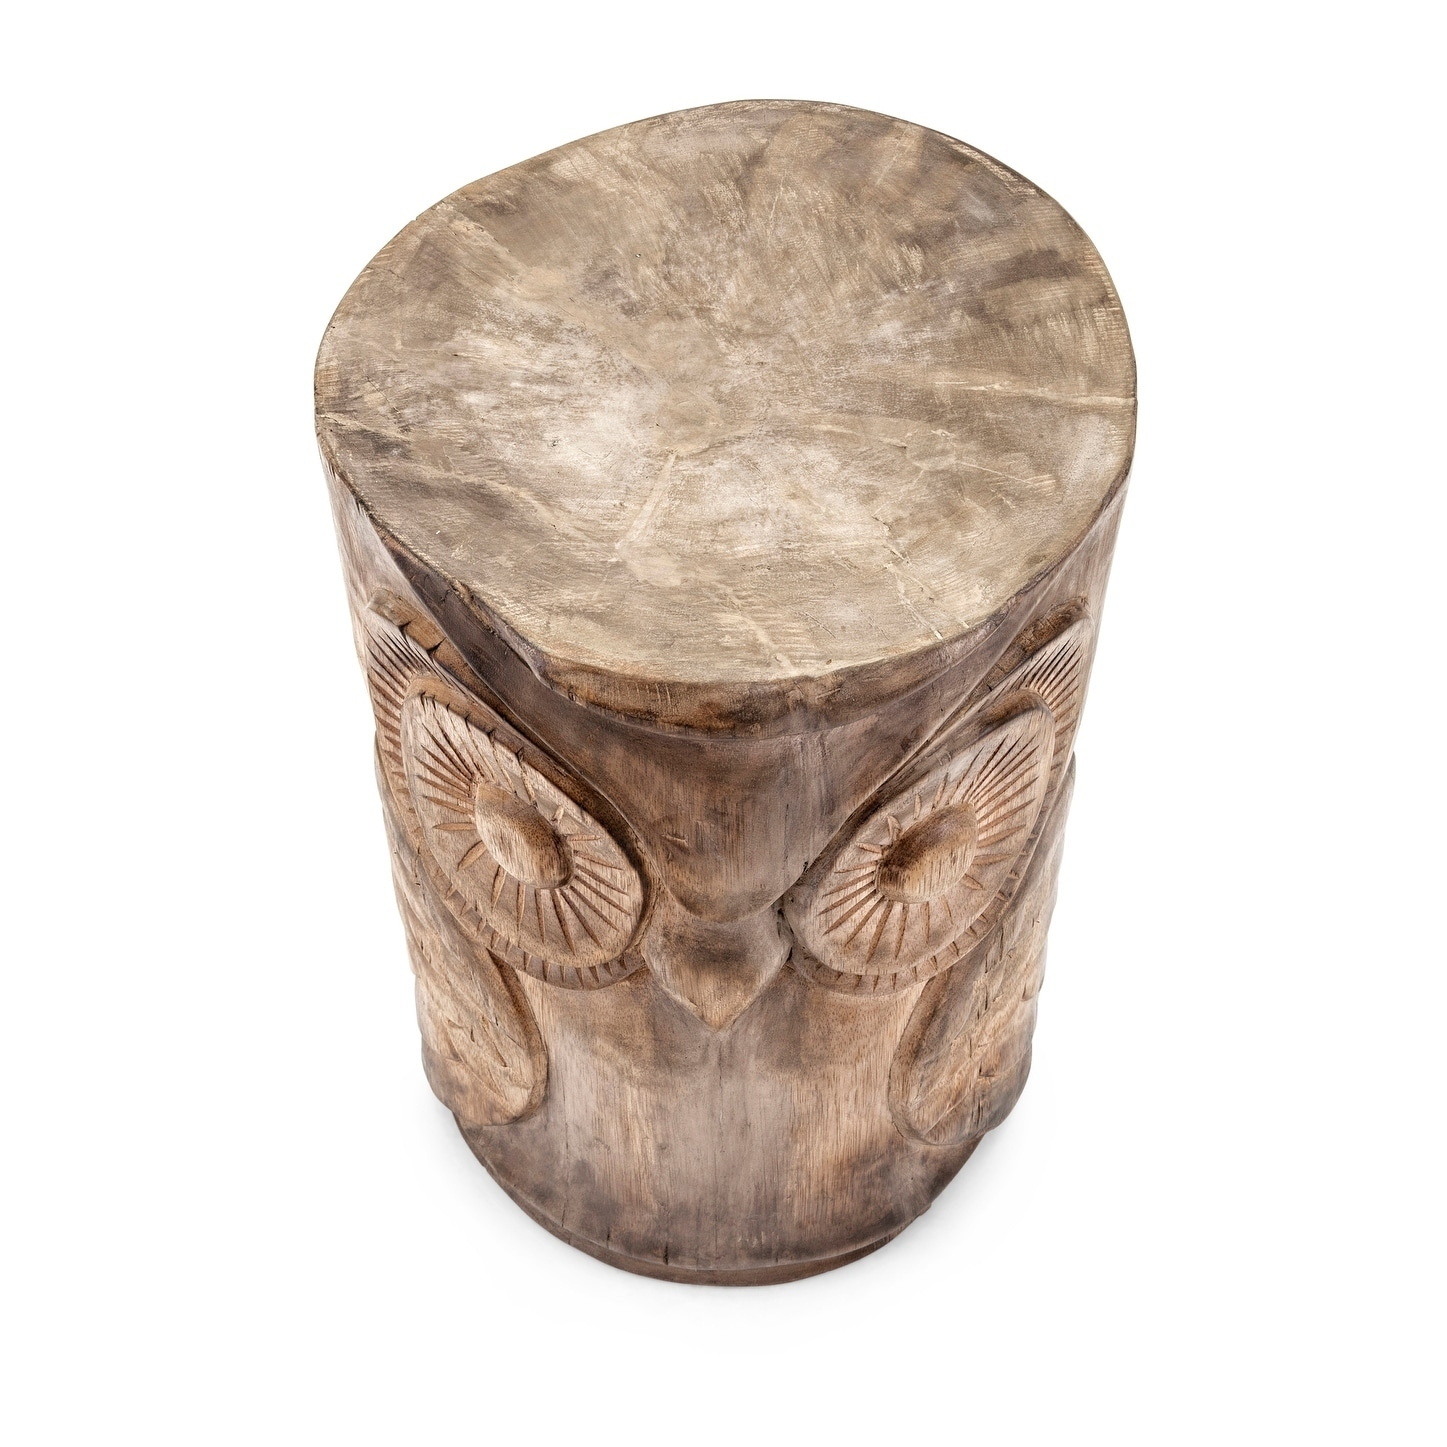 garden old caravan product owl stool today free home international overstock shipping ceramic wise